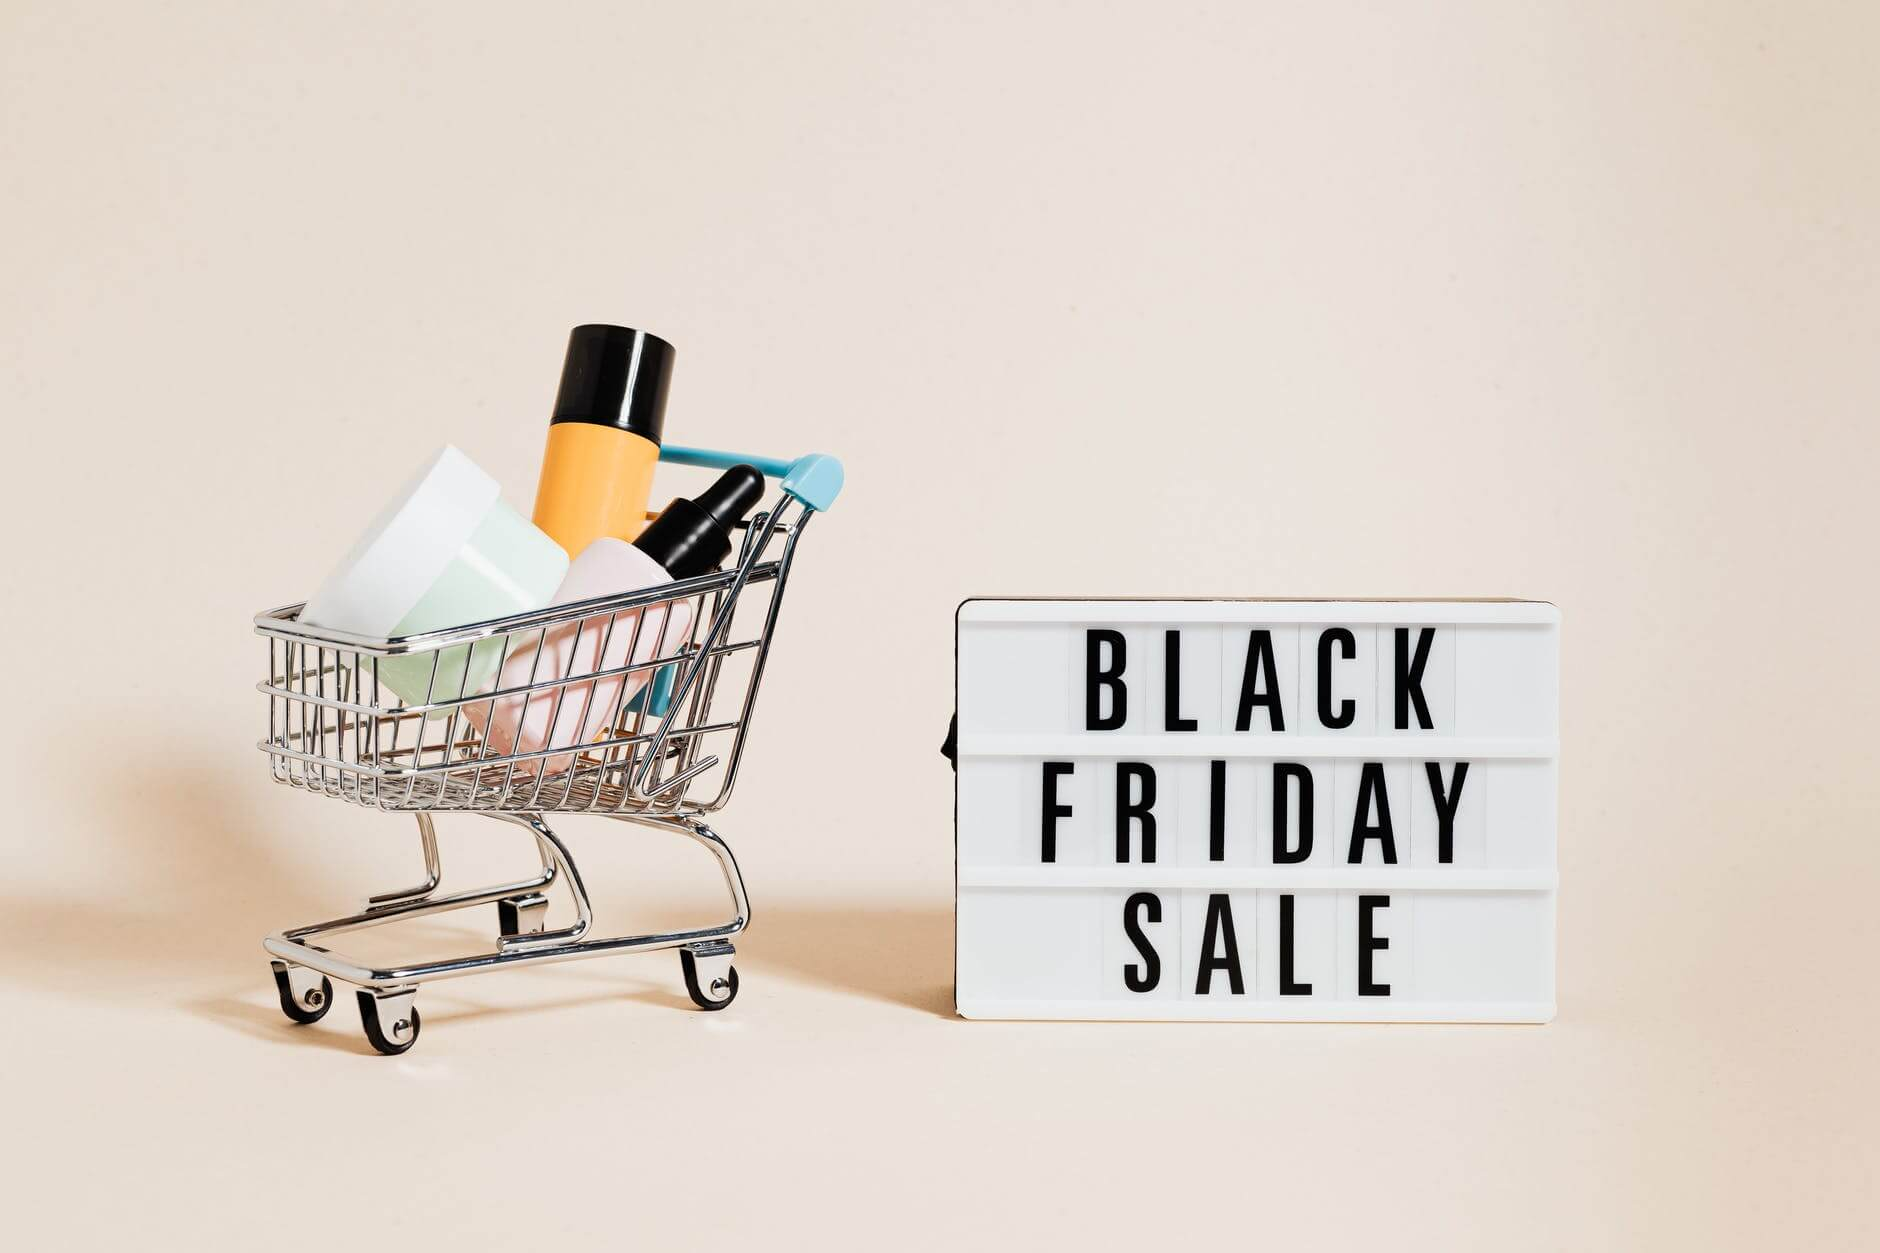 Products in a shopping cart during Black Friday Sale